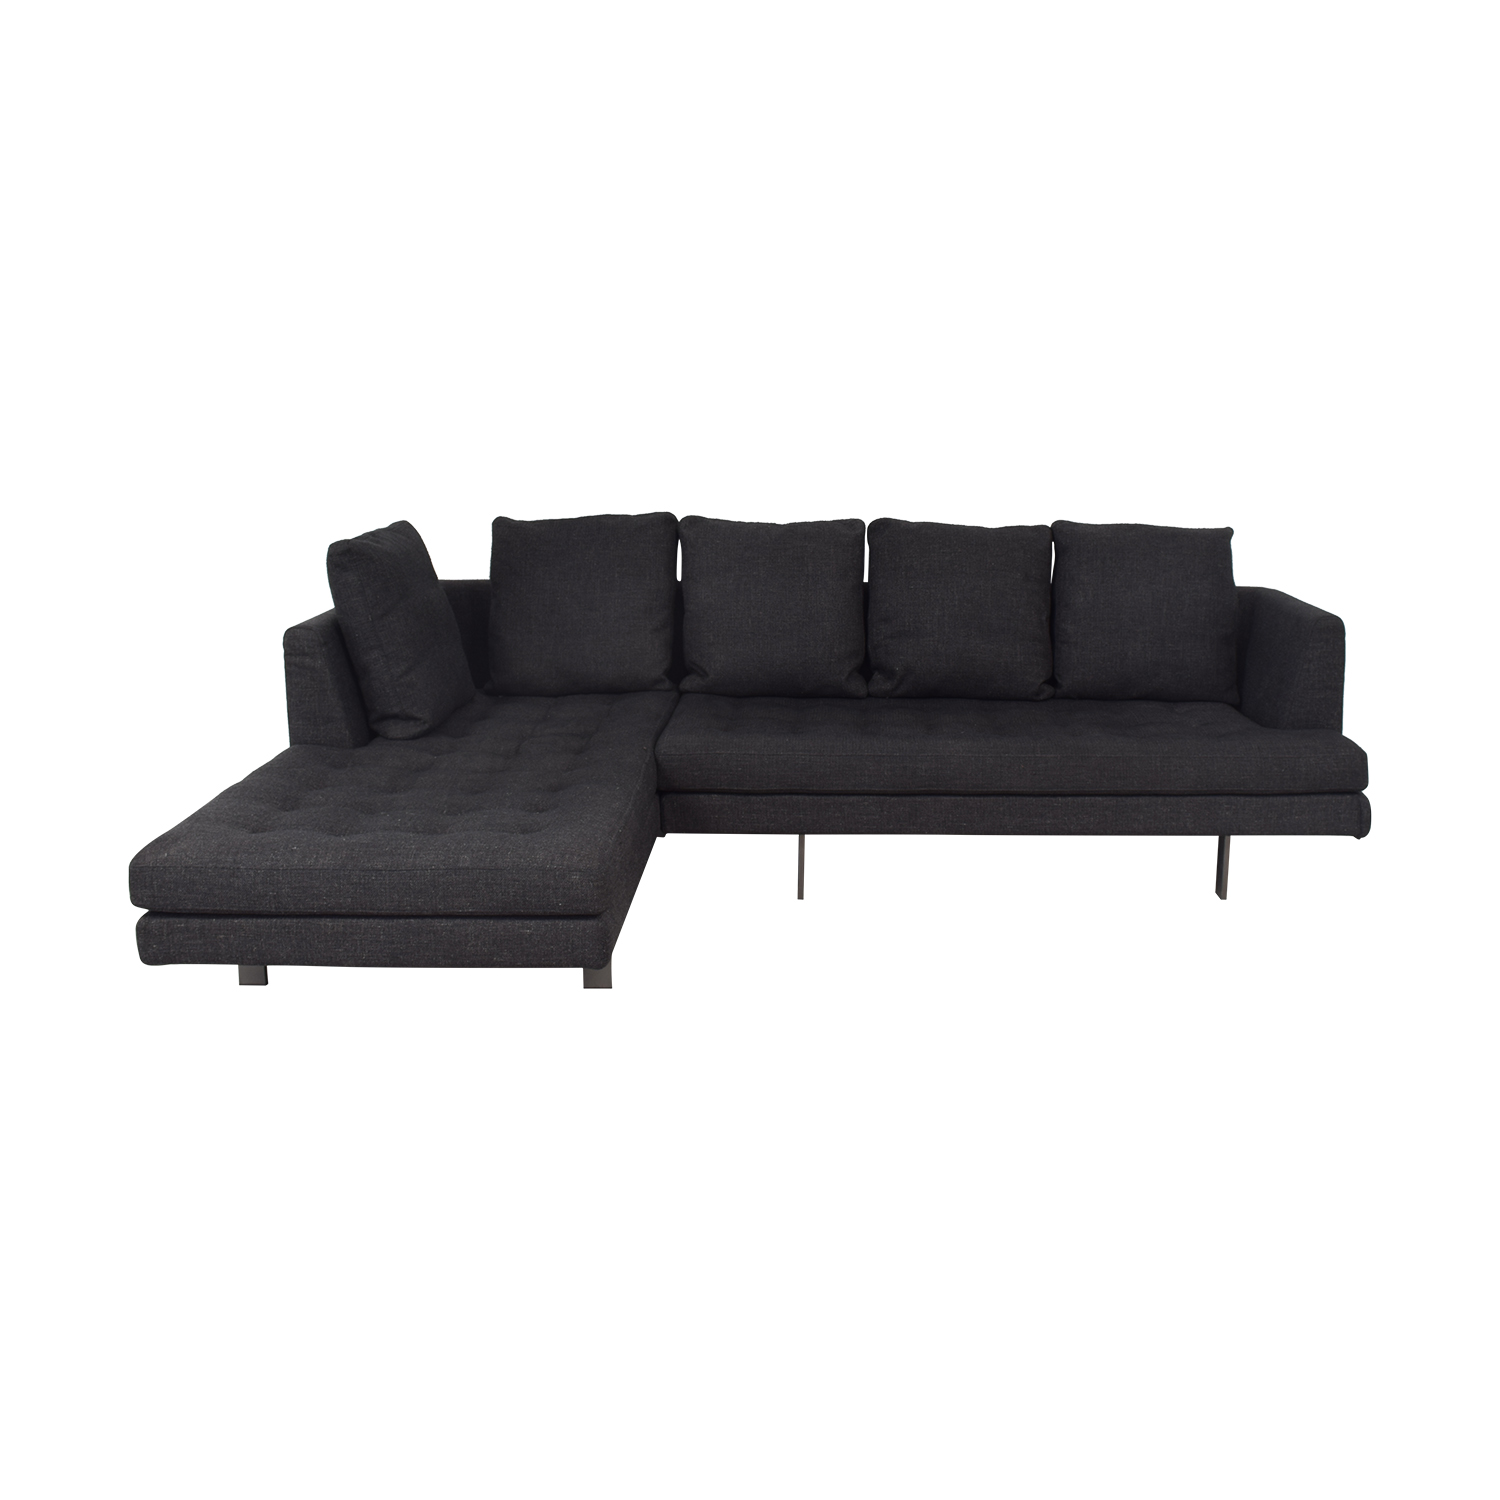 Bensen Bensen Edward Sectional Sofa 175 on sale